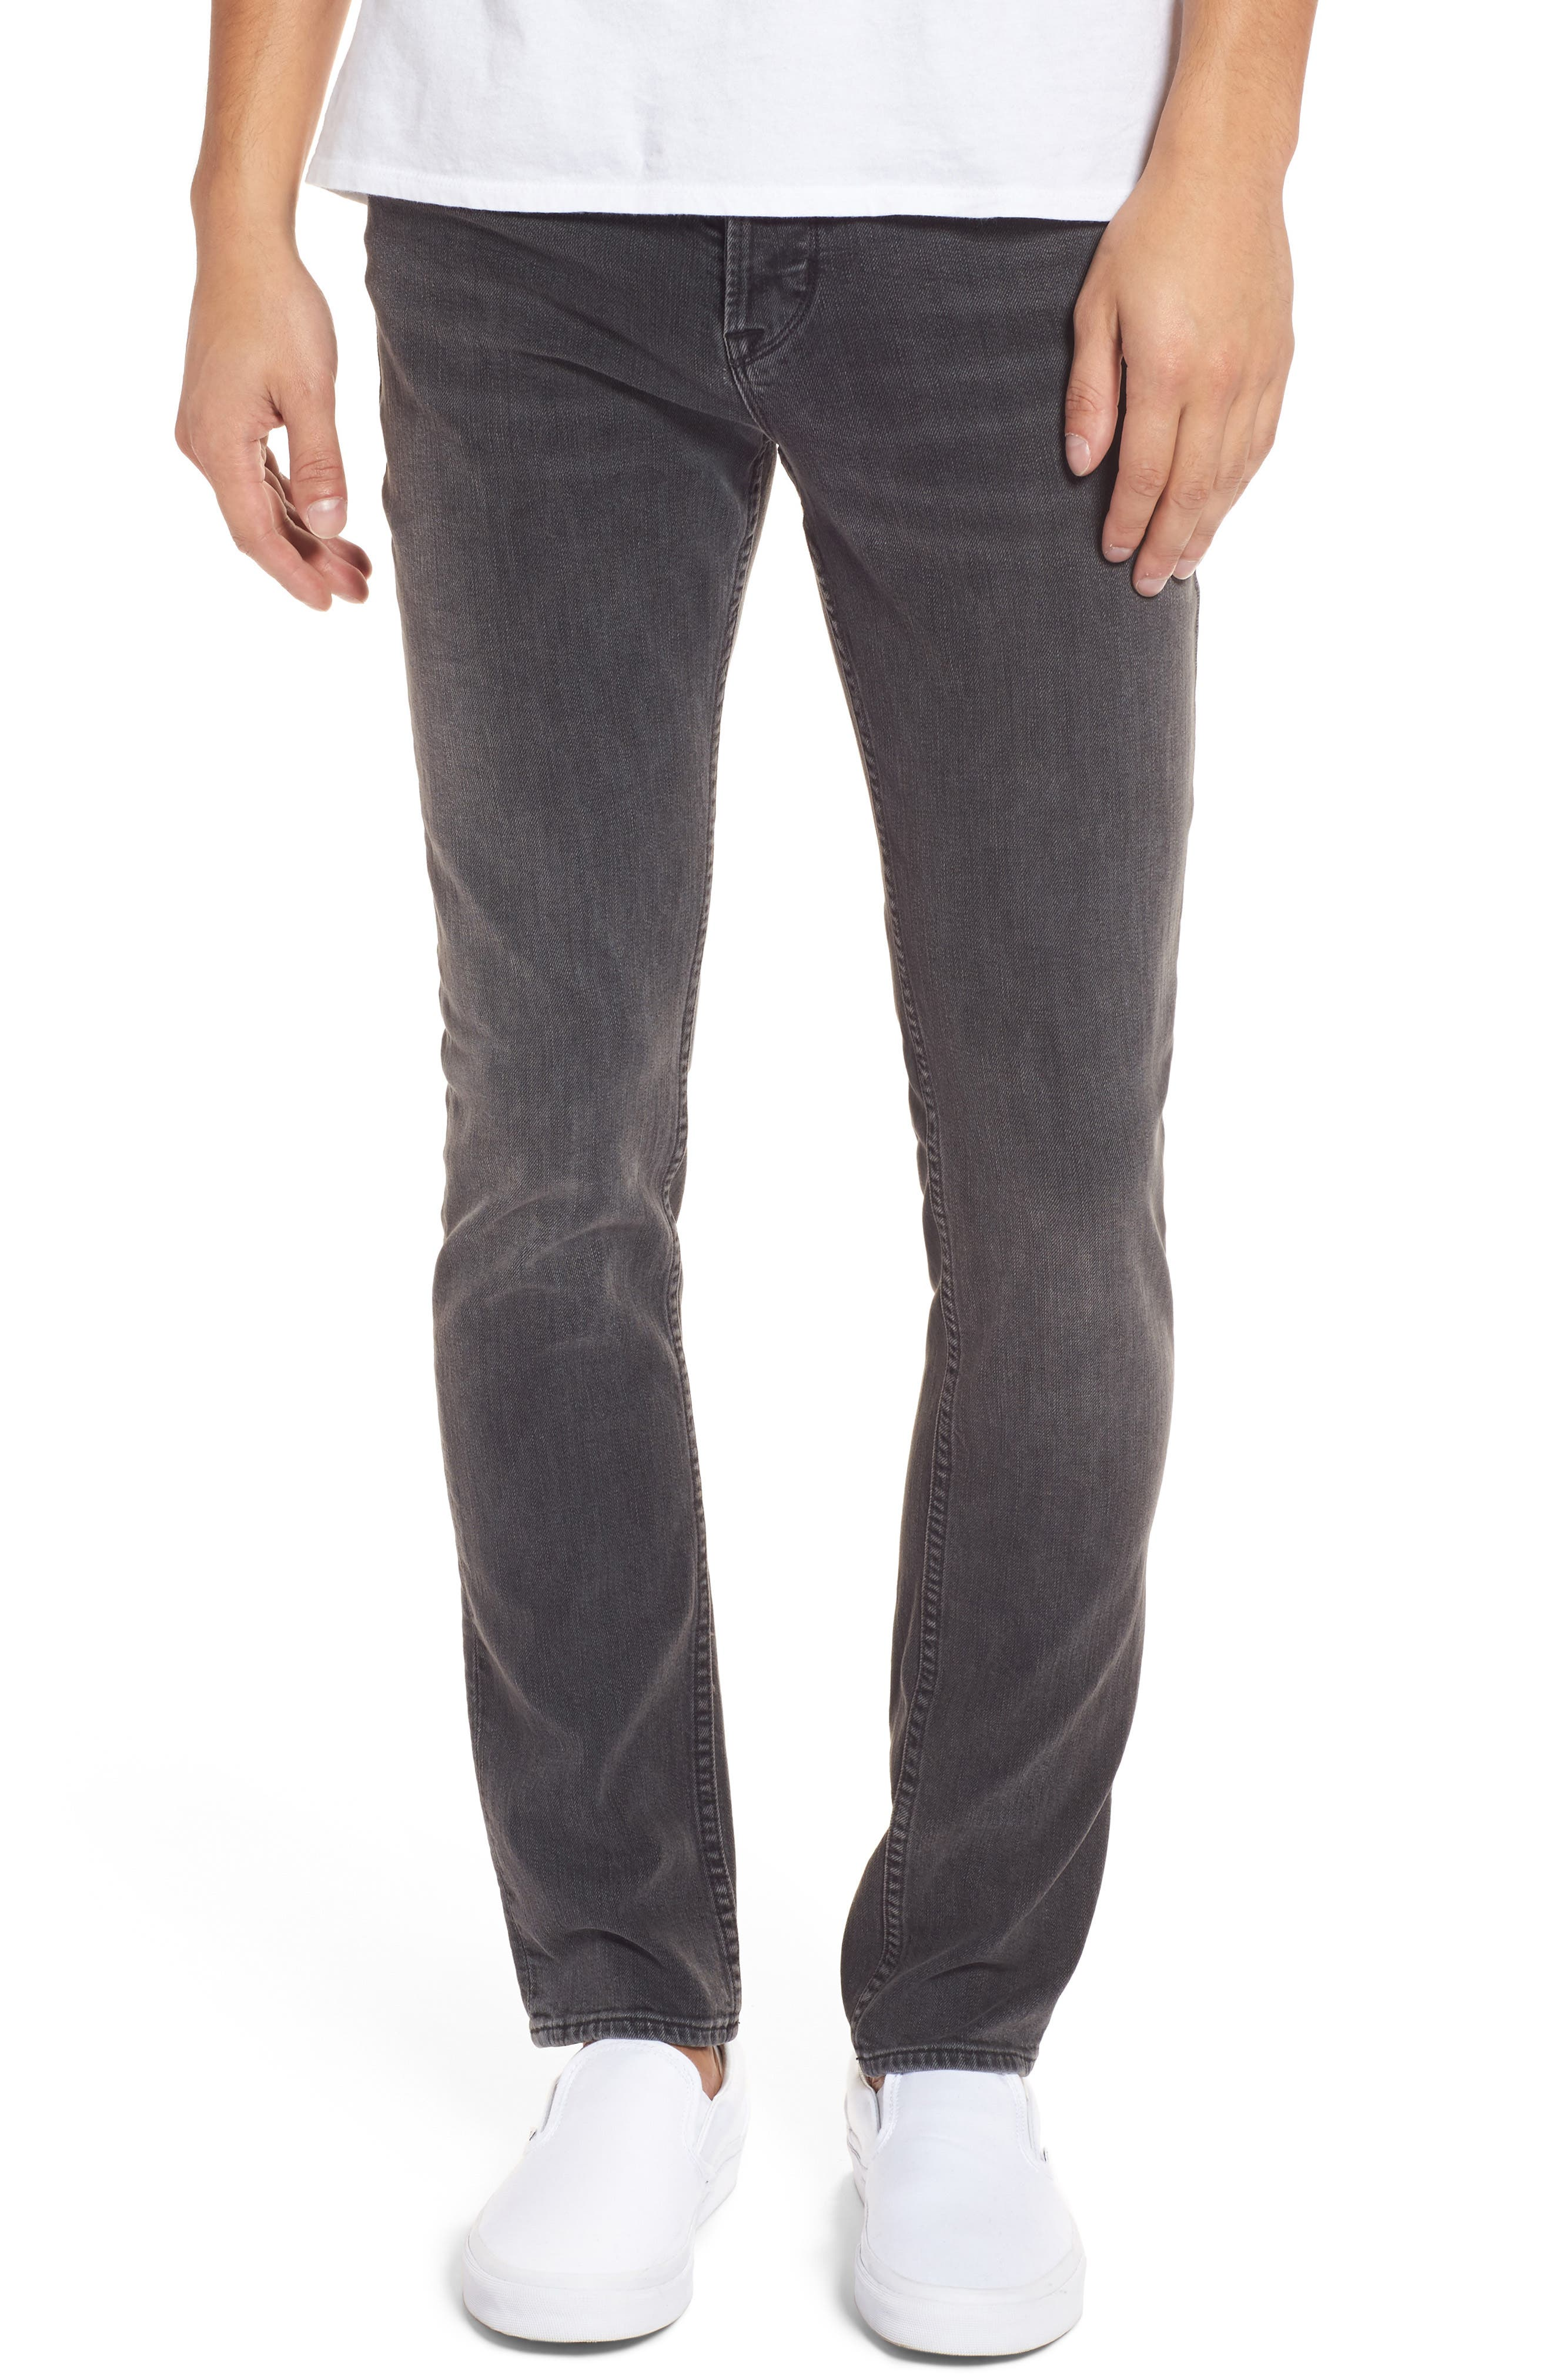 Axl Skinny Fit Jeans,                         Main,                         color, Oxidize